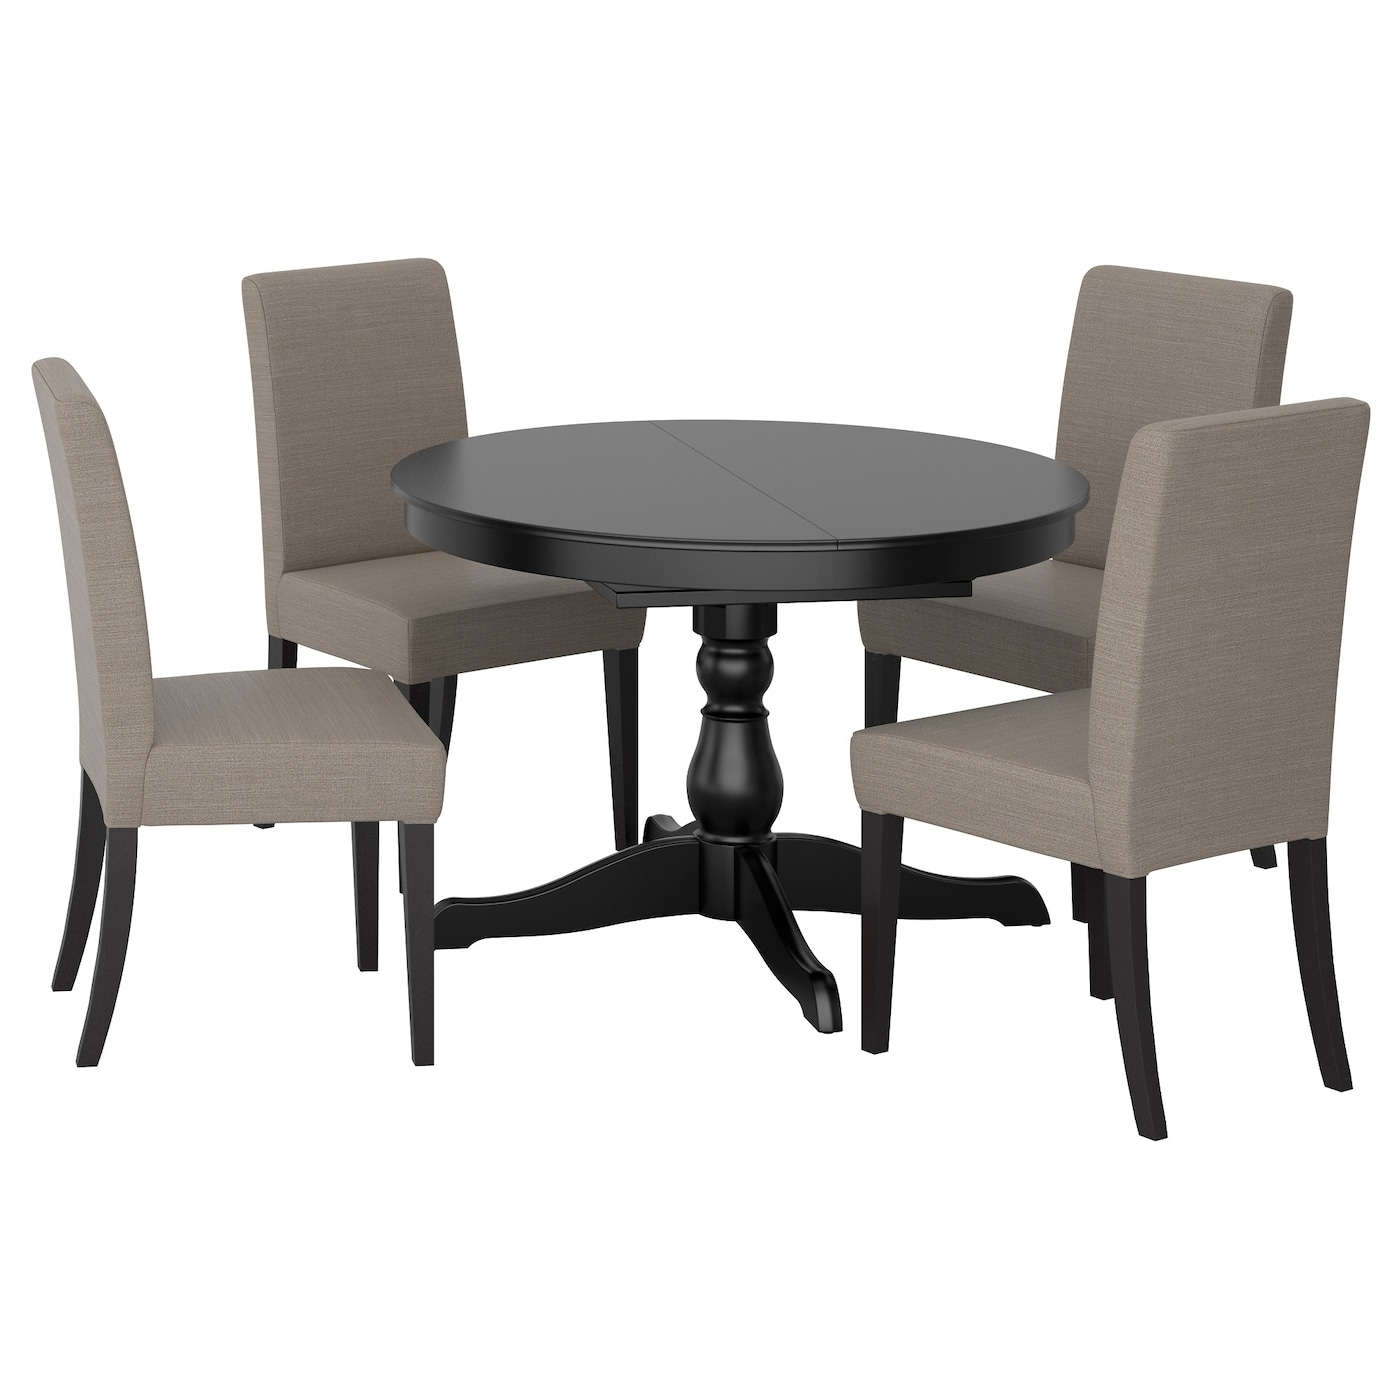 Ingatorp henriksdal table and 4 chairs black nolhaga grey for Dining set with bench and chairs